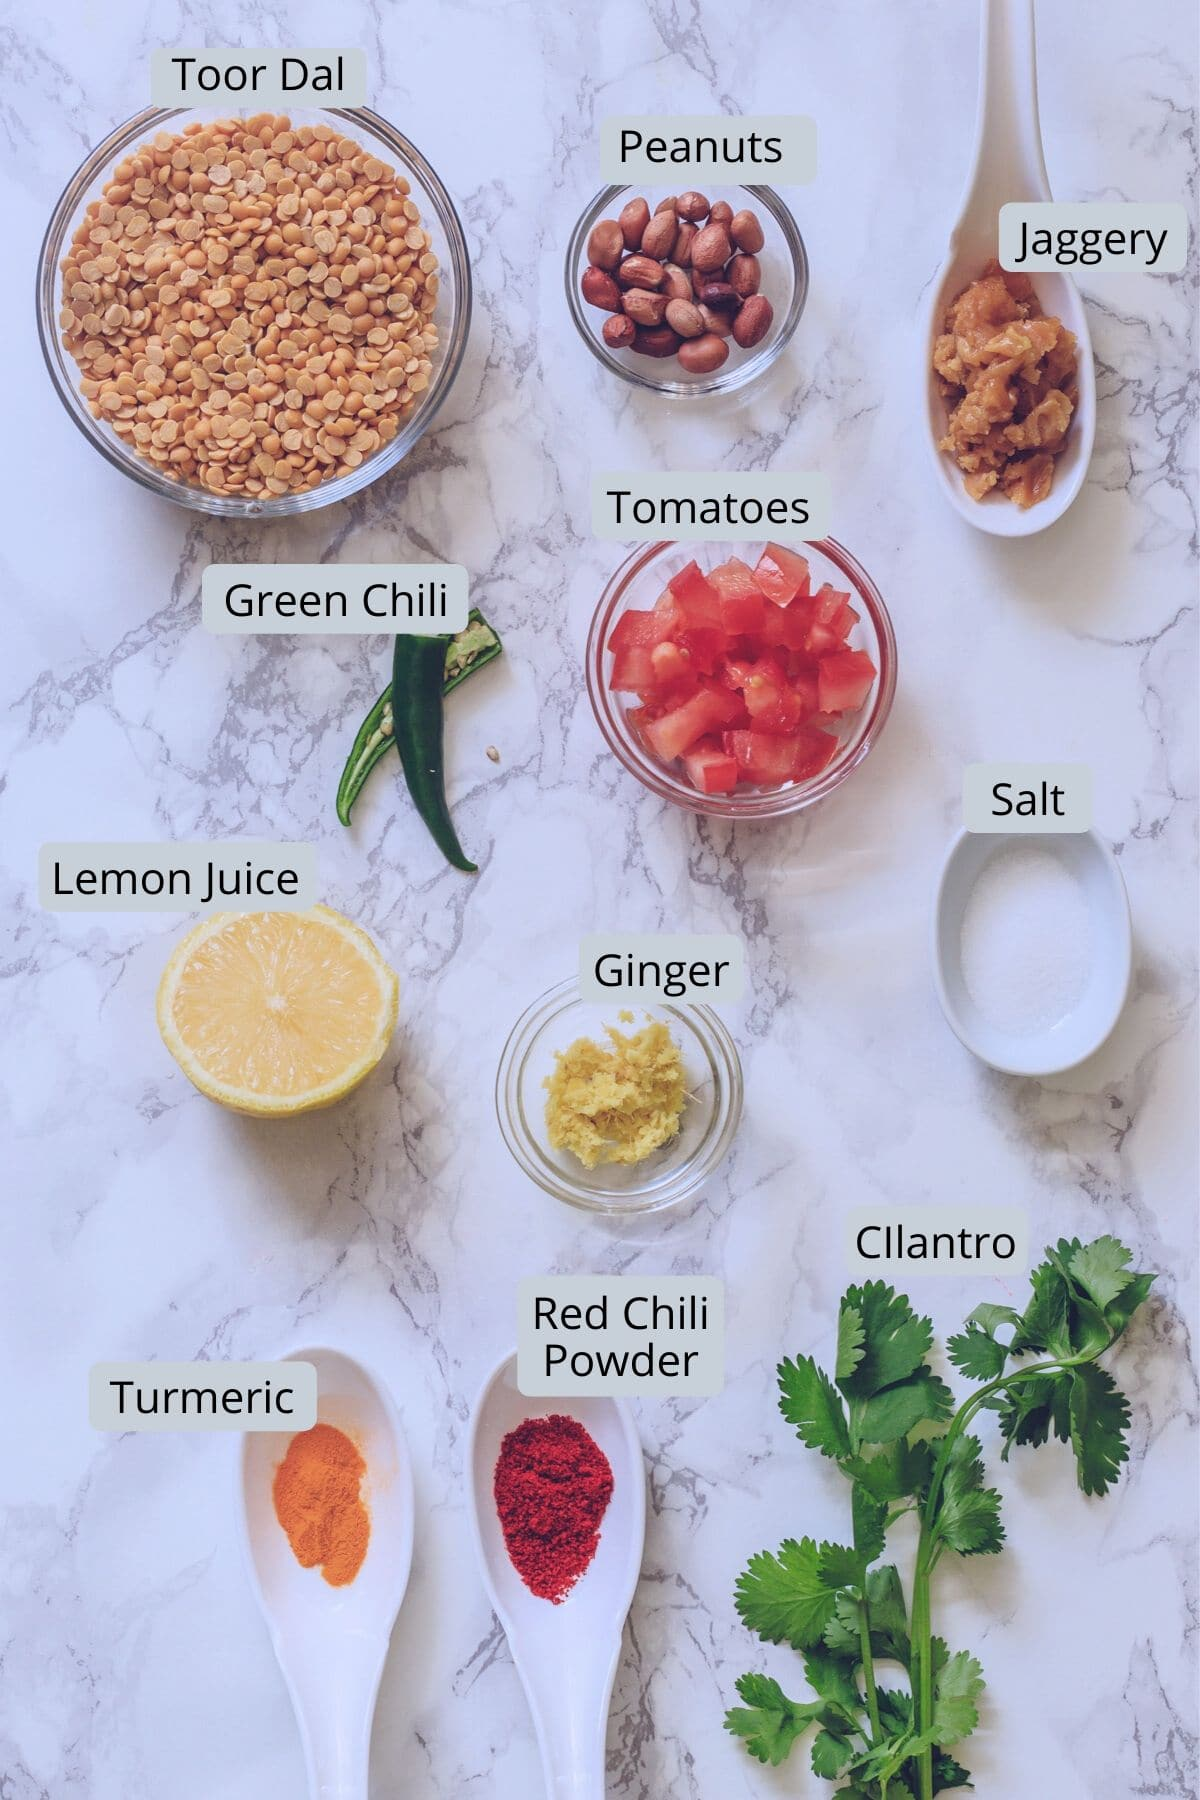 Ingredients used in gujarati dal includes toor dal, peanuts, jaggery, tomatoes, lemon, cilantro, red chili, turmeric powder, salt, ginger, green chili